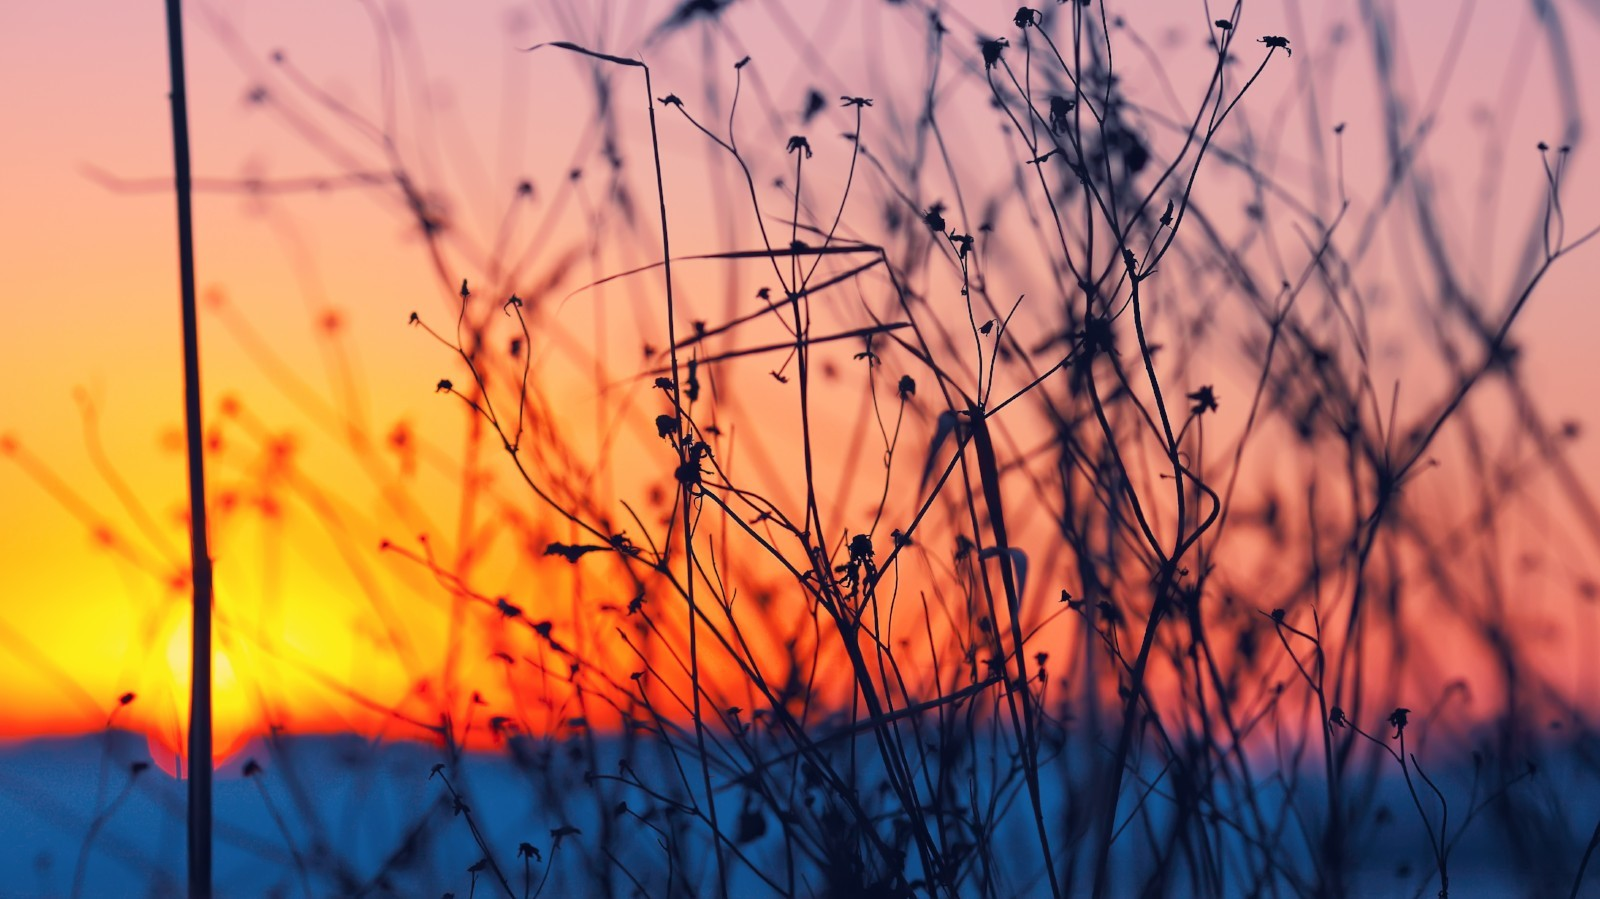 A bare shrub in the foreground with the setting sun in the background.